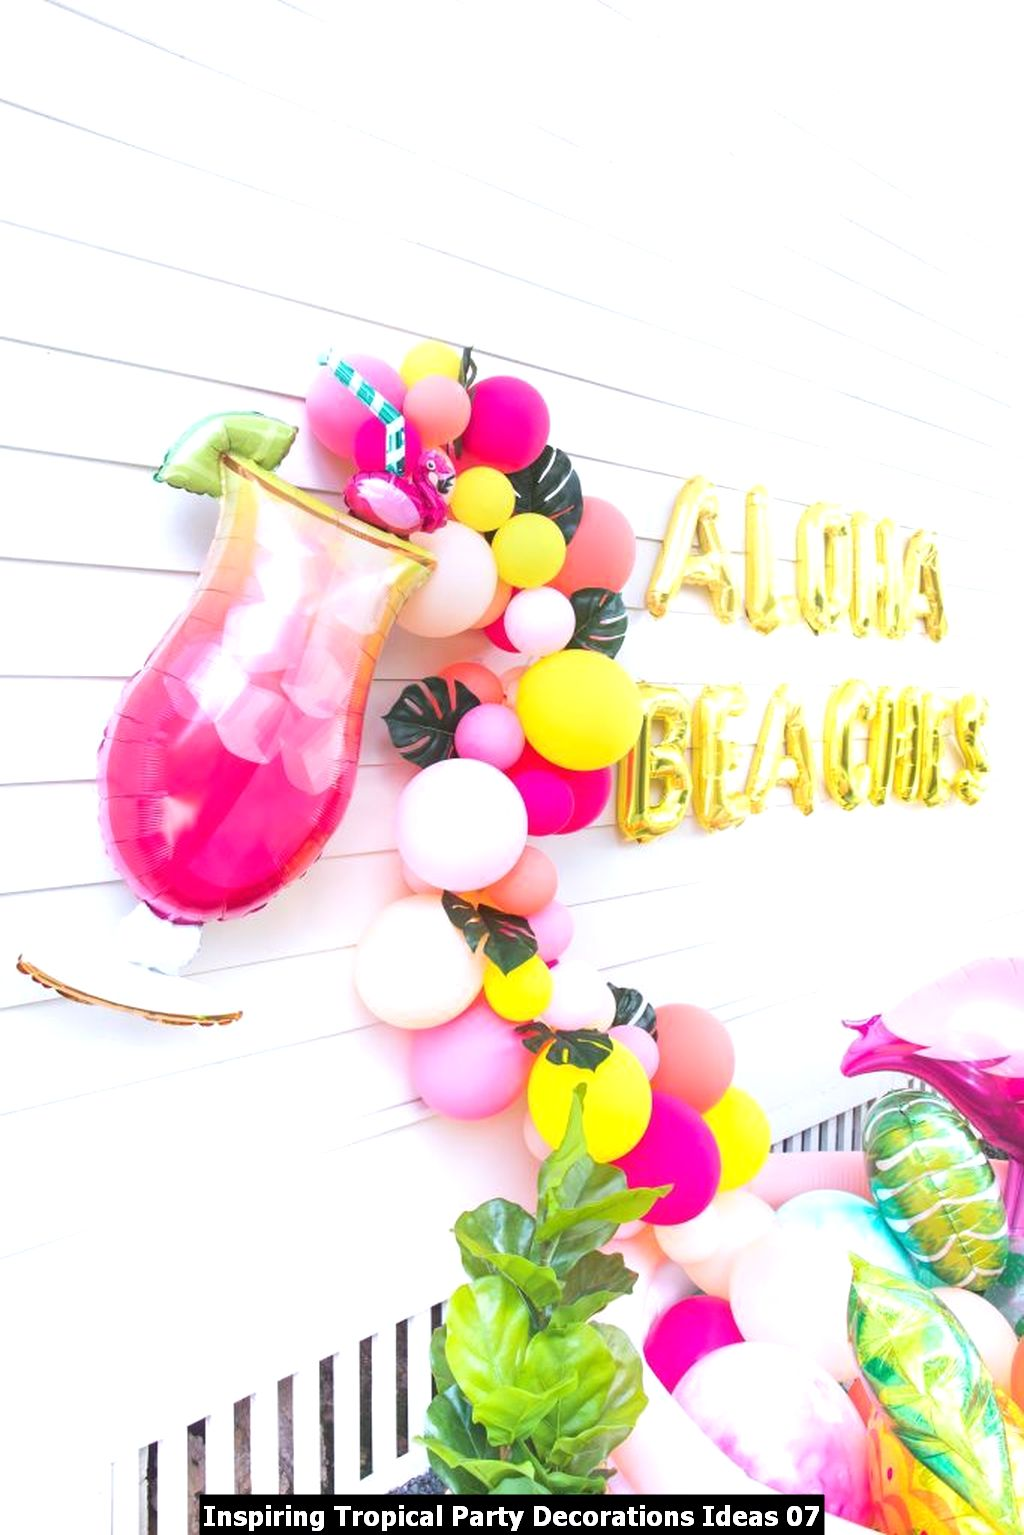 Inspiring Tropical Party Decorations Ideas 07